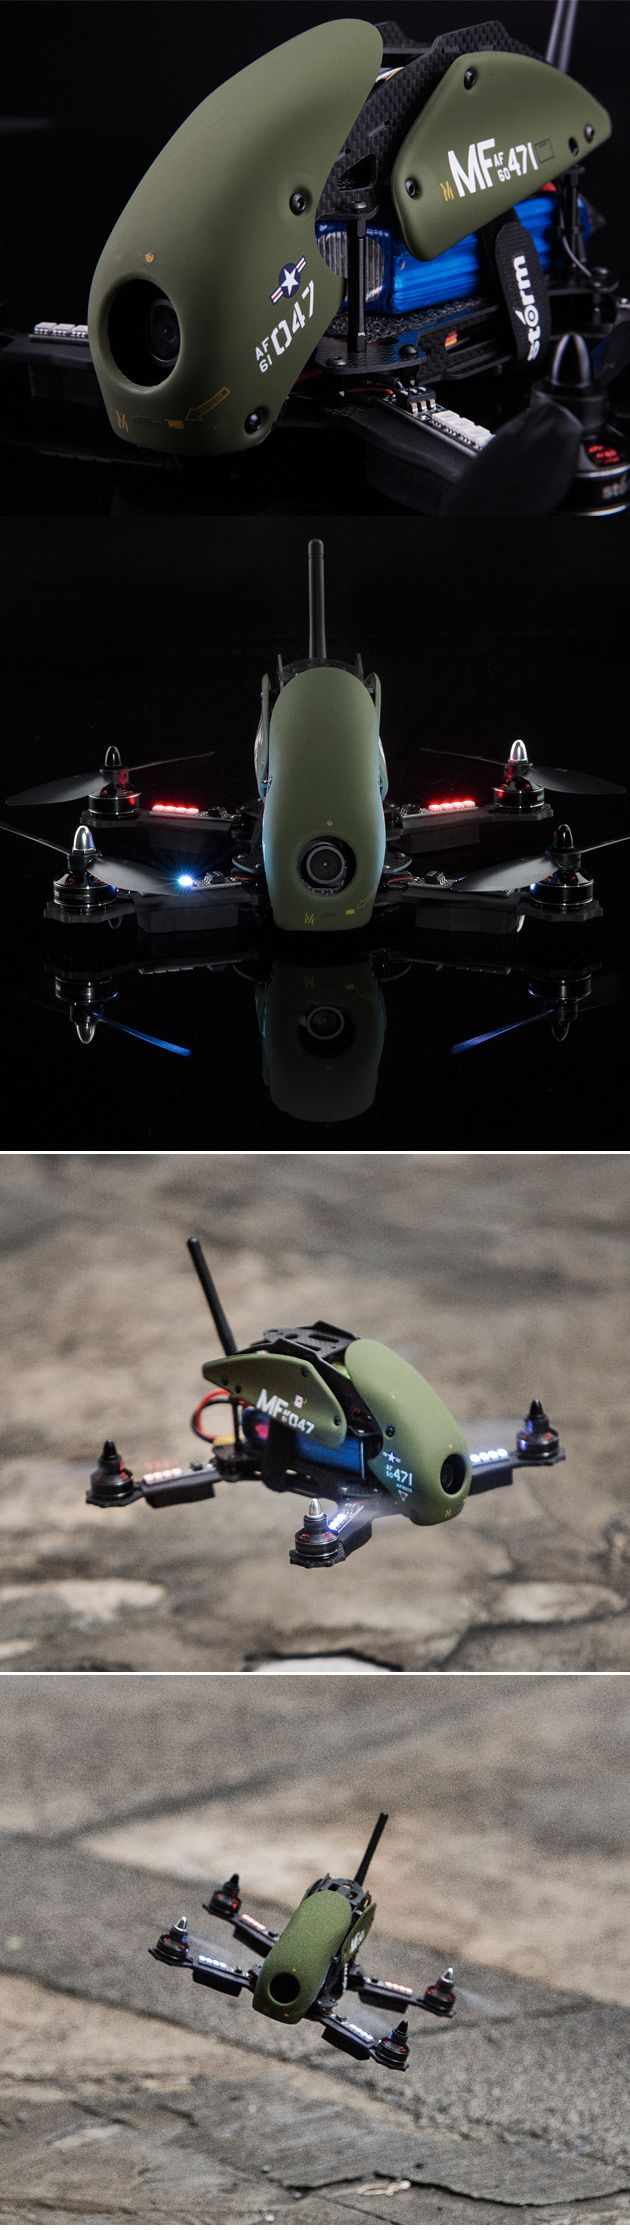 STORM Racing Drone (RTF / SRD280 Military Spec)